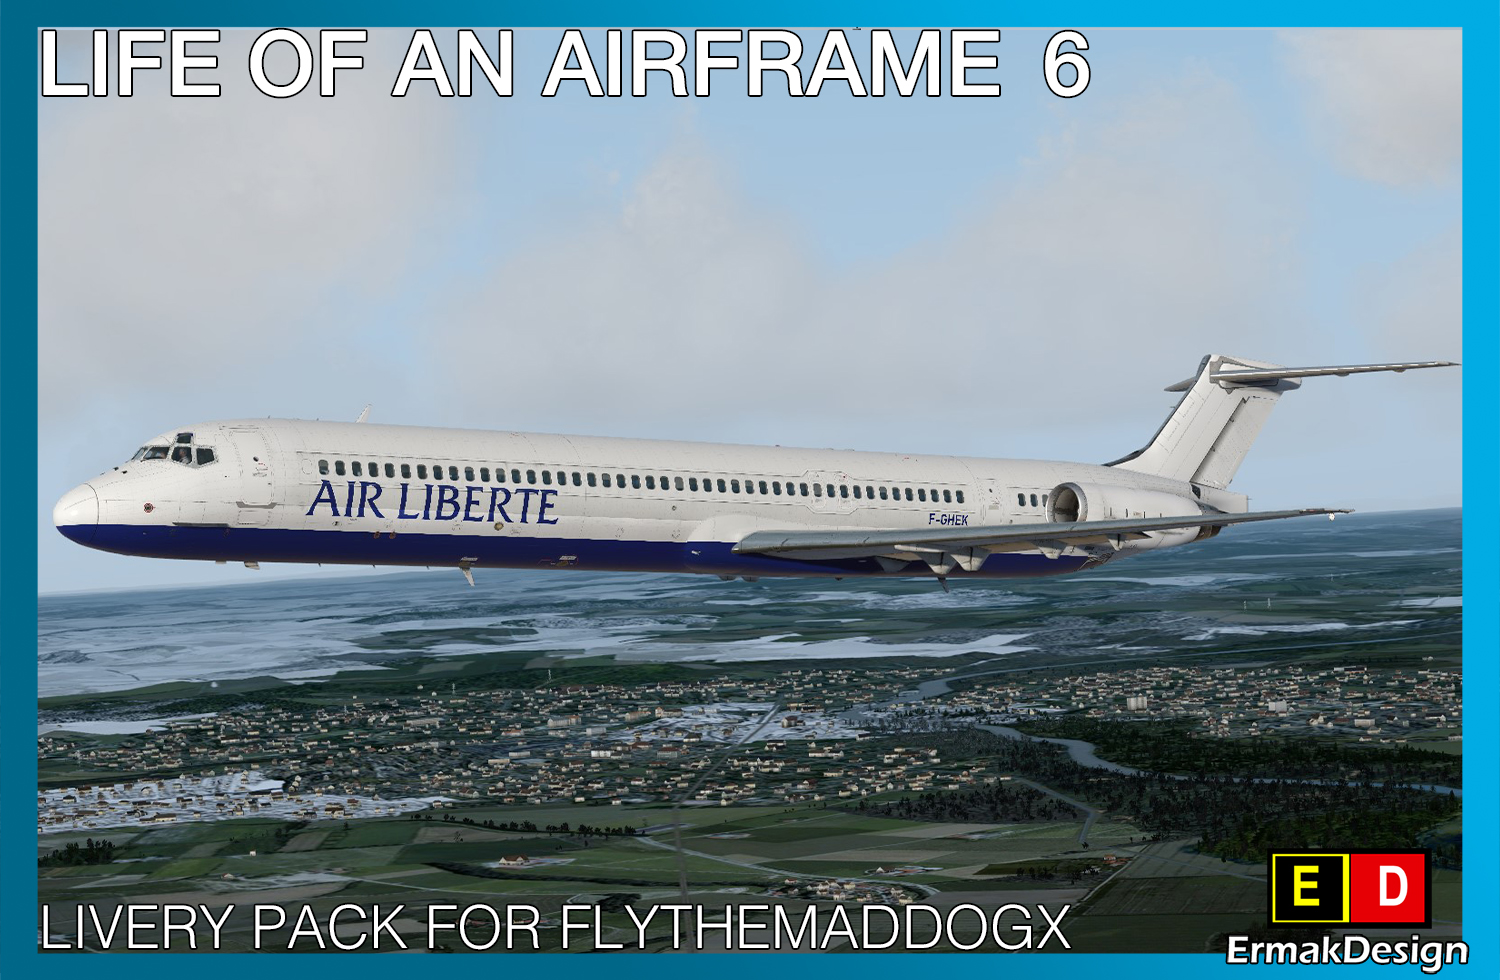 ERMAKDESIGN - LIFE OF AN AIRFRAME LIVERY PACK 6 FOR FLYTHEMADDOGX P3Dv4